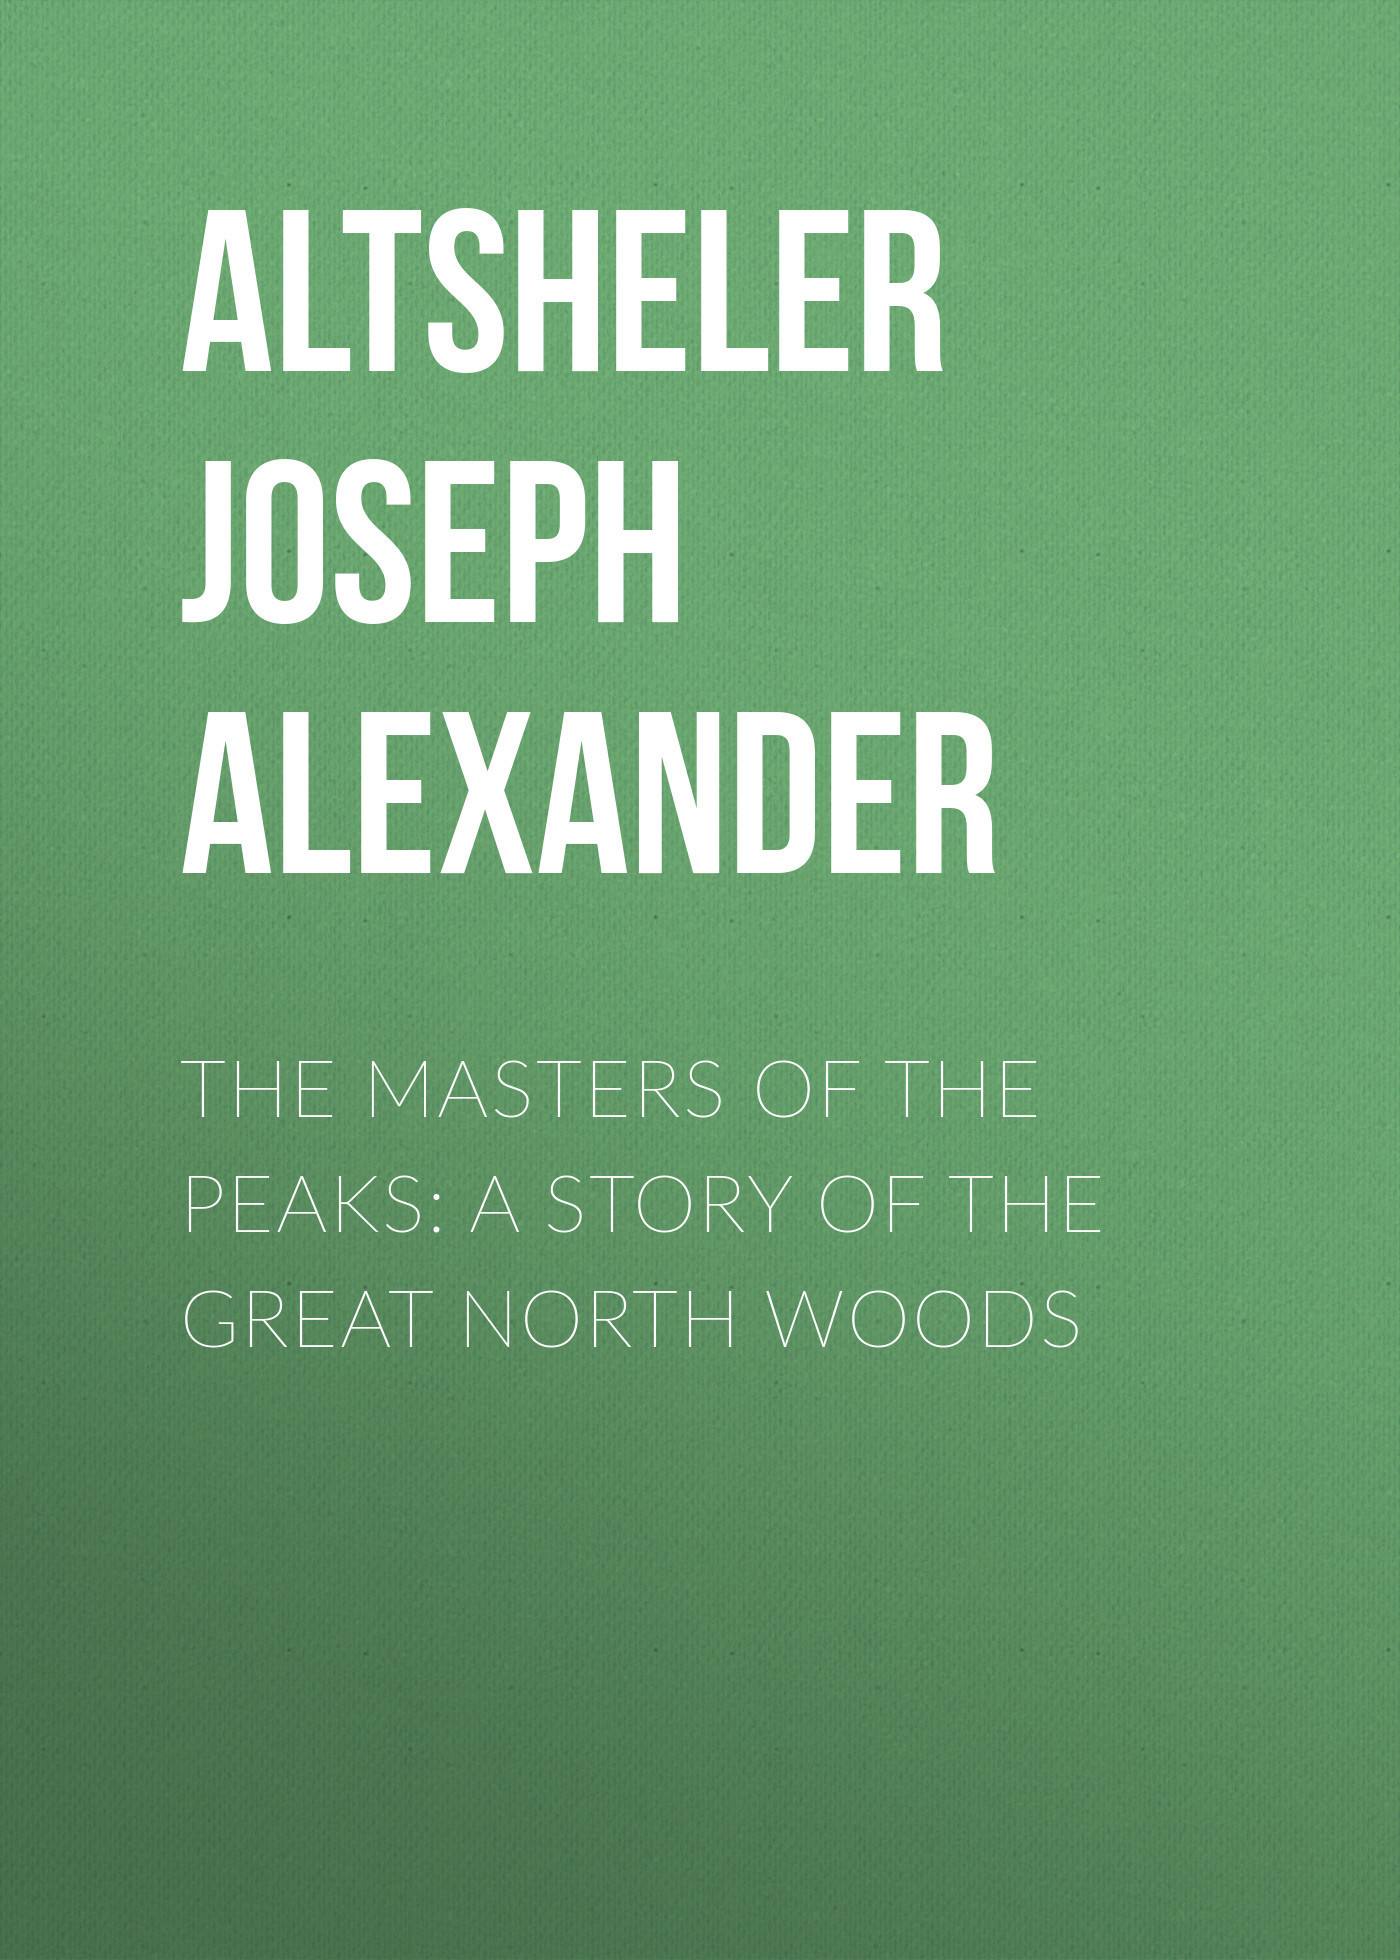 Altsheler Joseph Alexander The Masters of the Peaks: A Story of the Great North Woods muriel barbier the story of lingerie